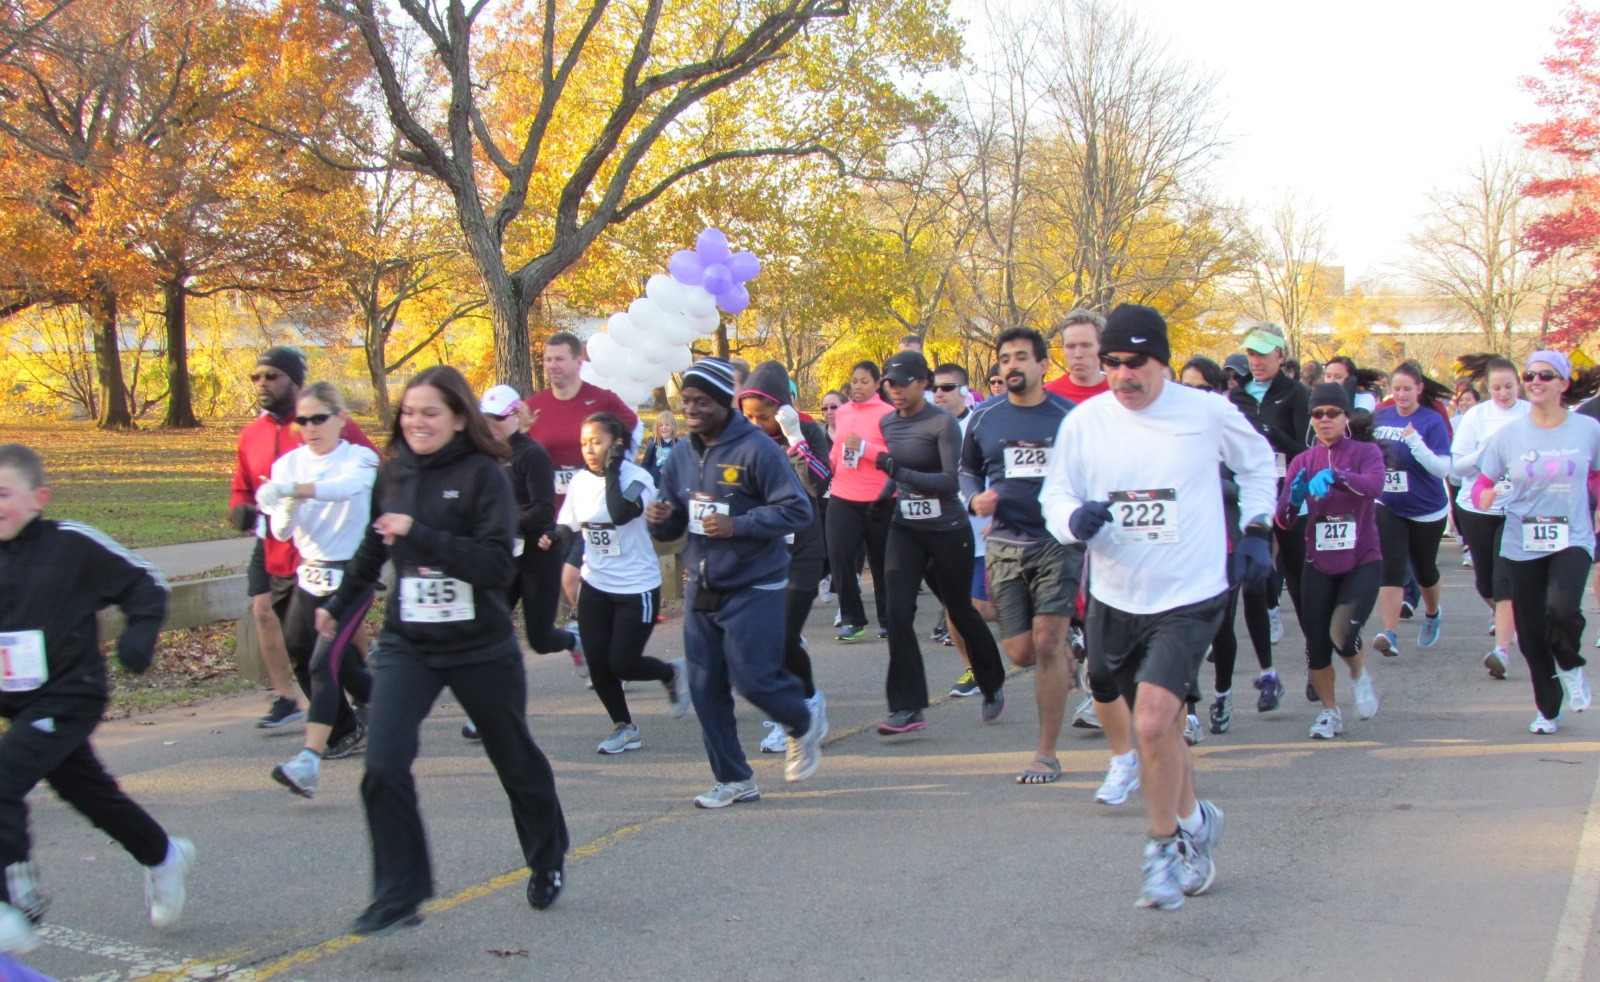 March of Dimes 5k for Healthy Babies & Kid's Race